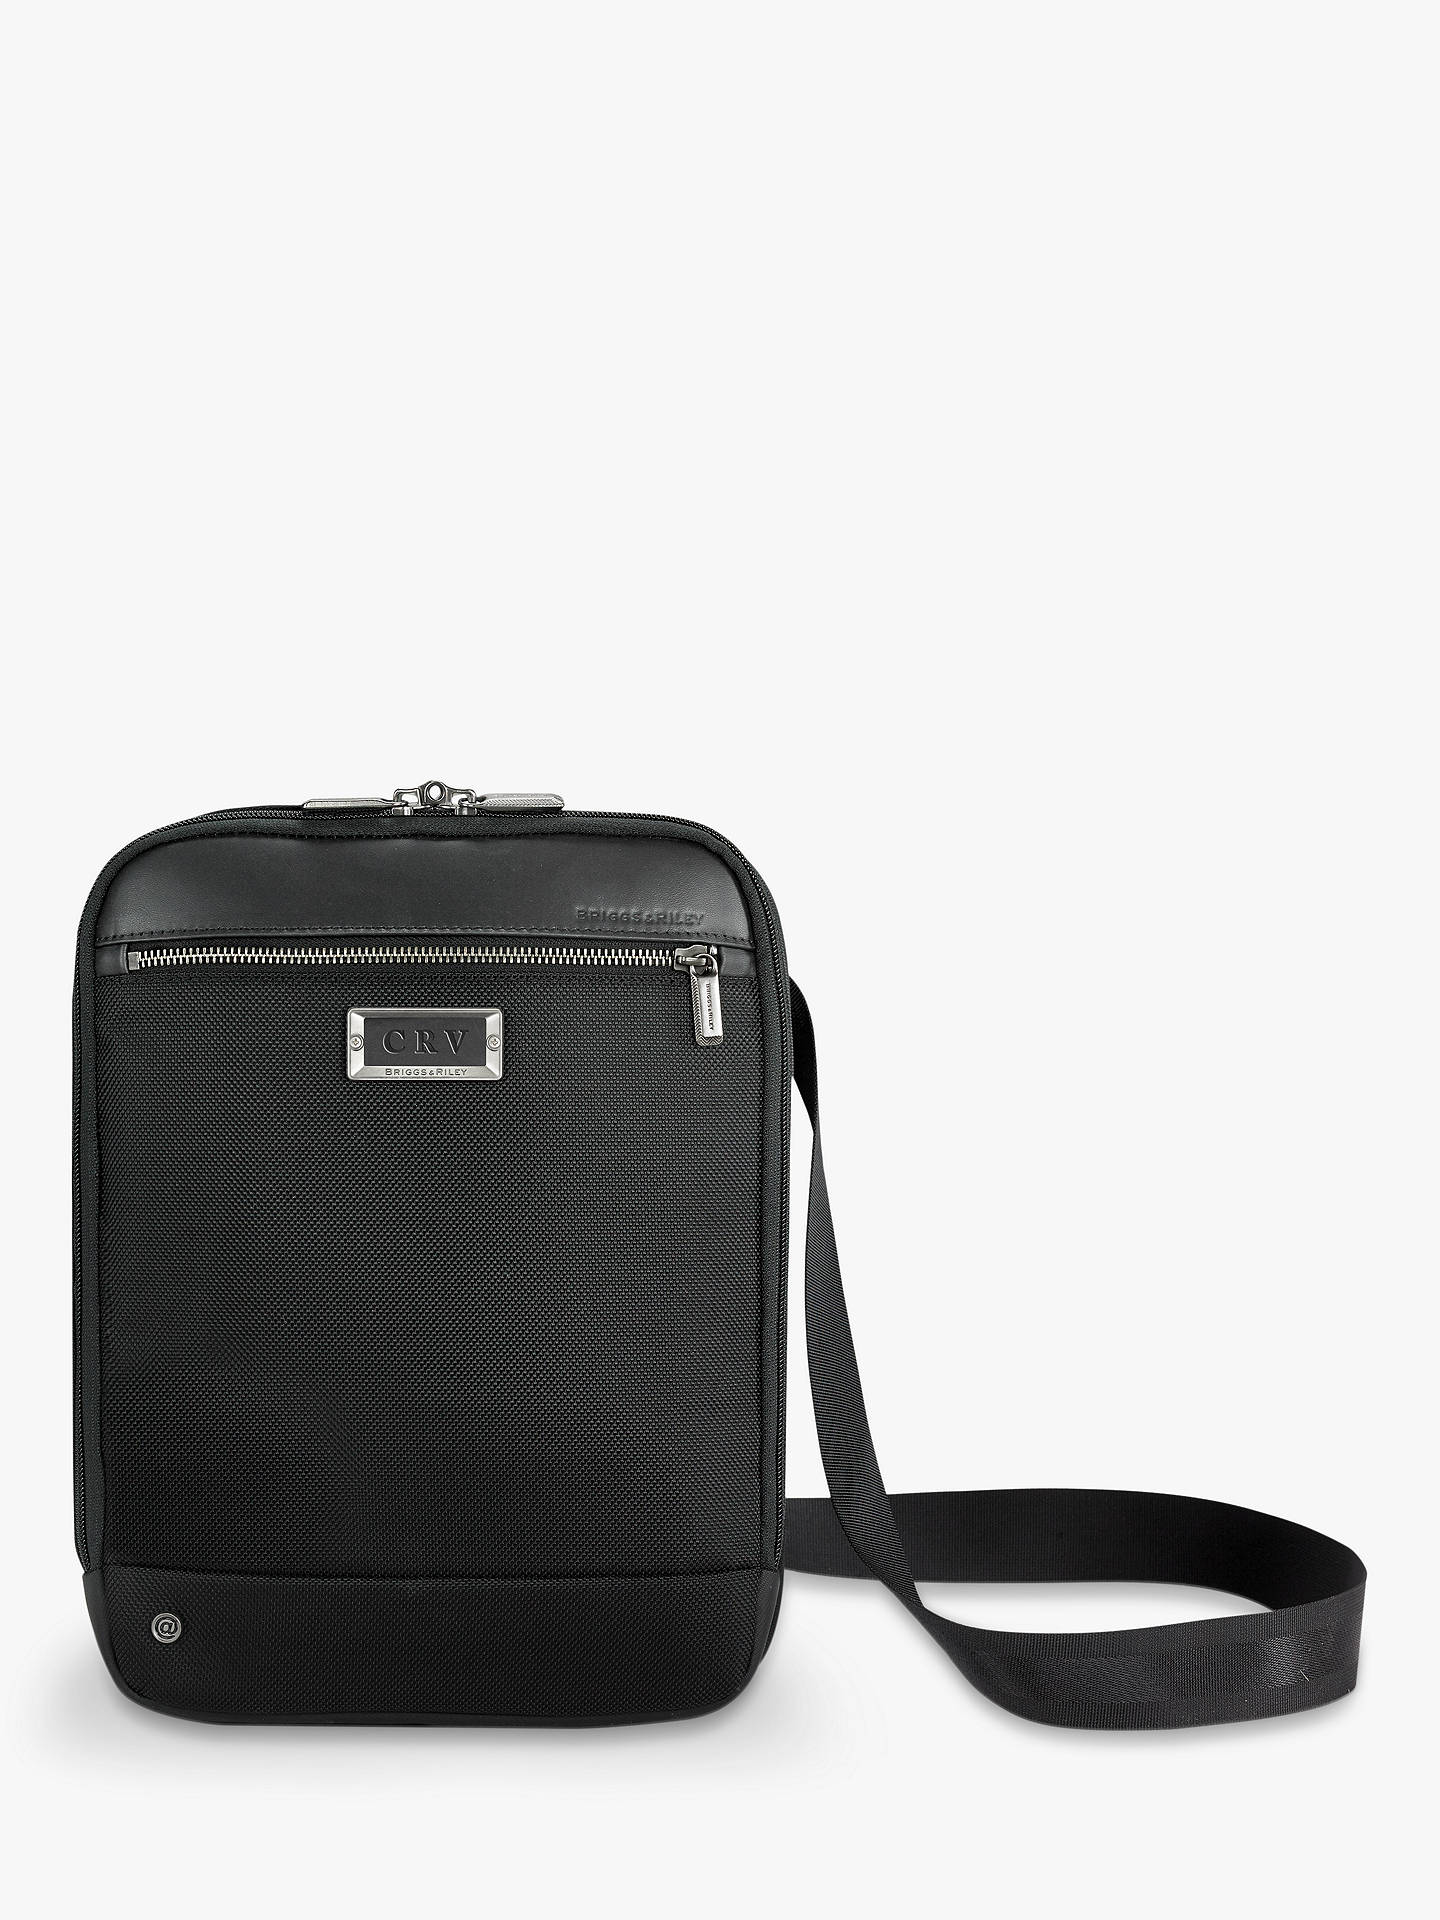 BuyBriggs & Riley AtWork Small Expandable Cross Body Bag, Black Online at johnlewis.com